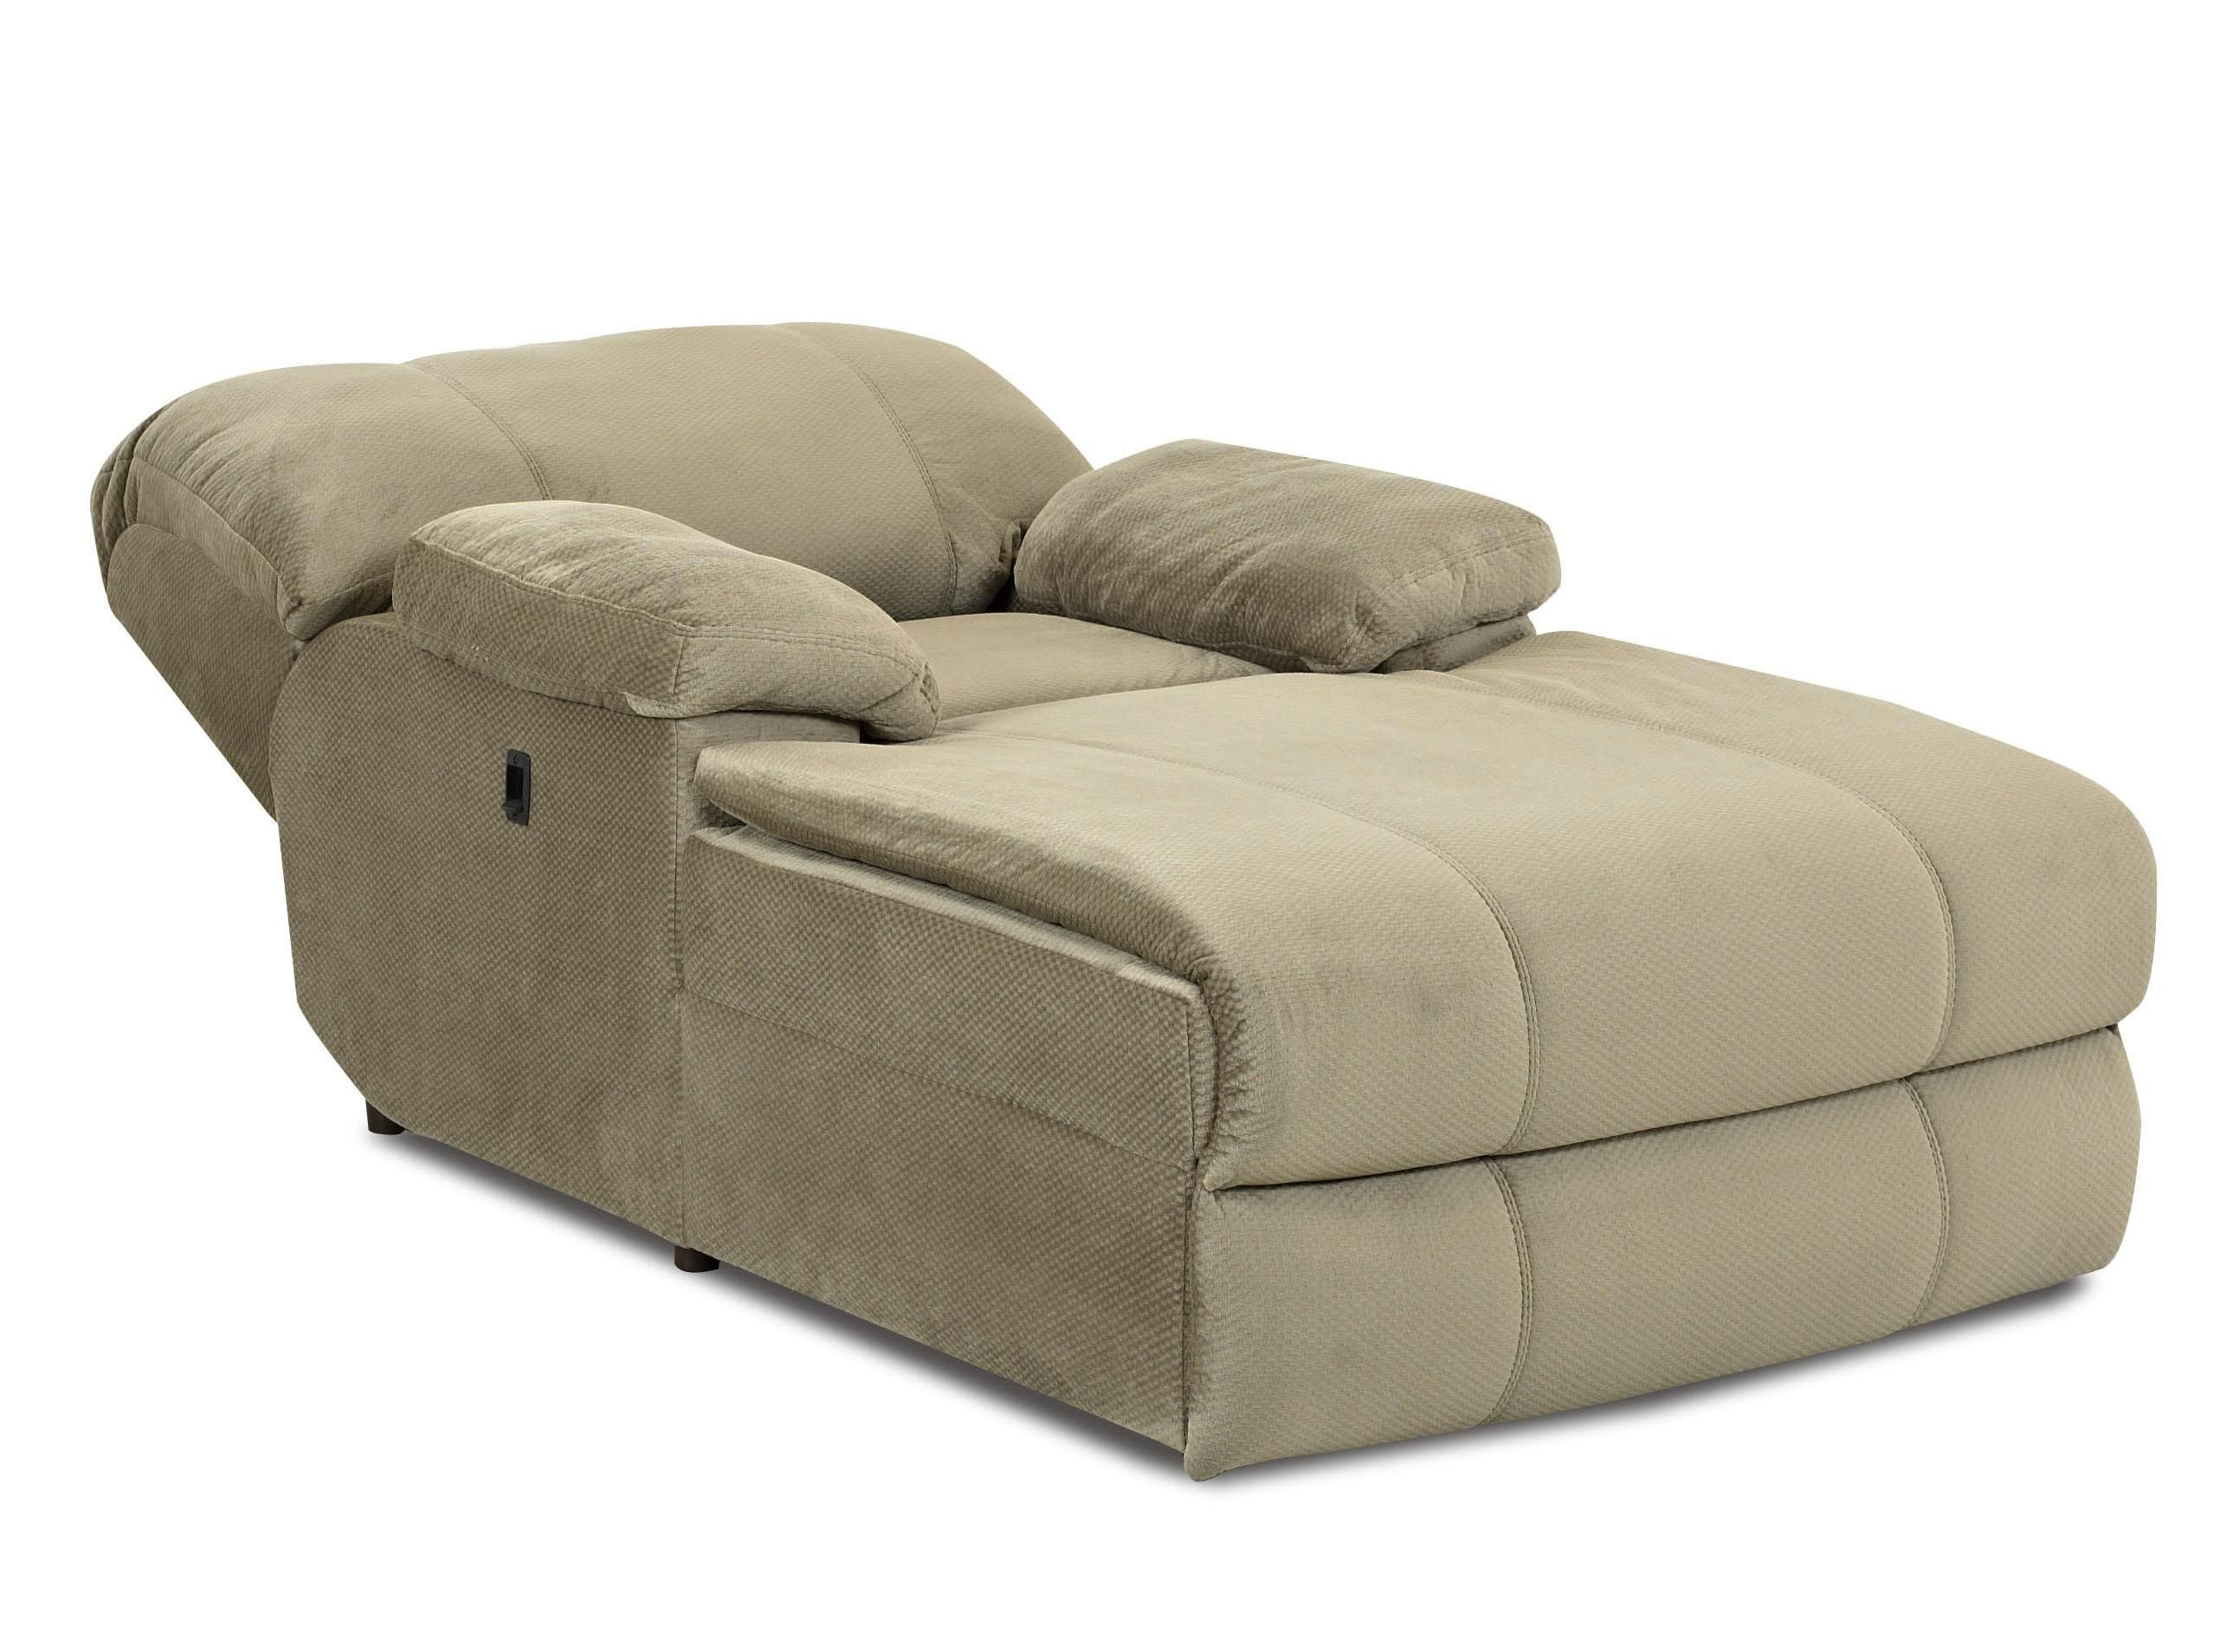 Best Chaise Lounge Chairs Indoor Oversized Chaise Lounge Kensington Reclining